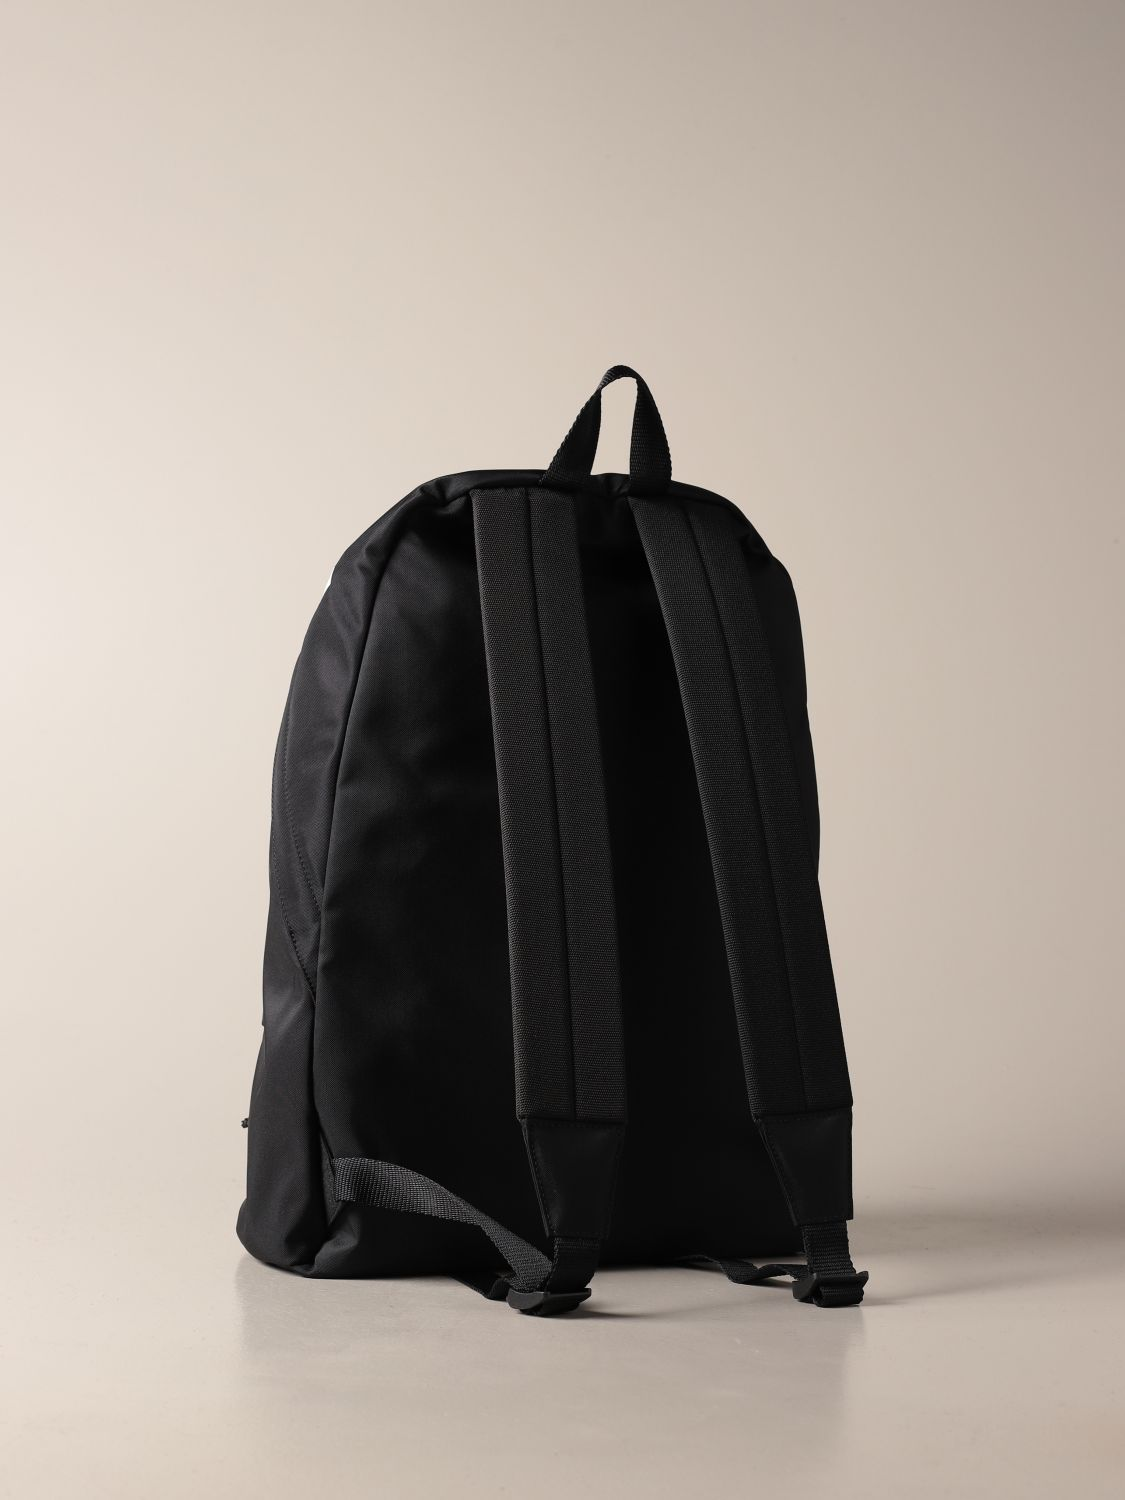 Shoulder bag Balenciaga: Balenciaga nylon backpack black 3